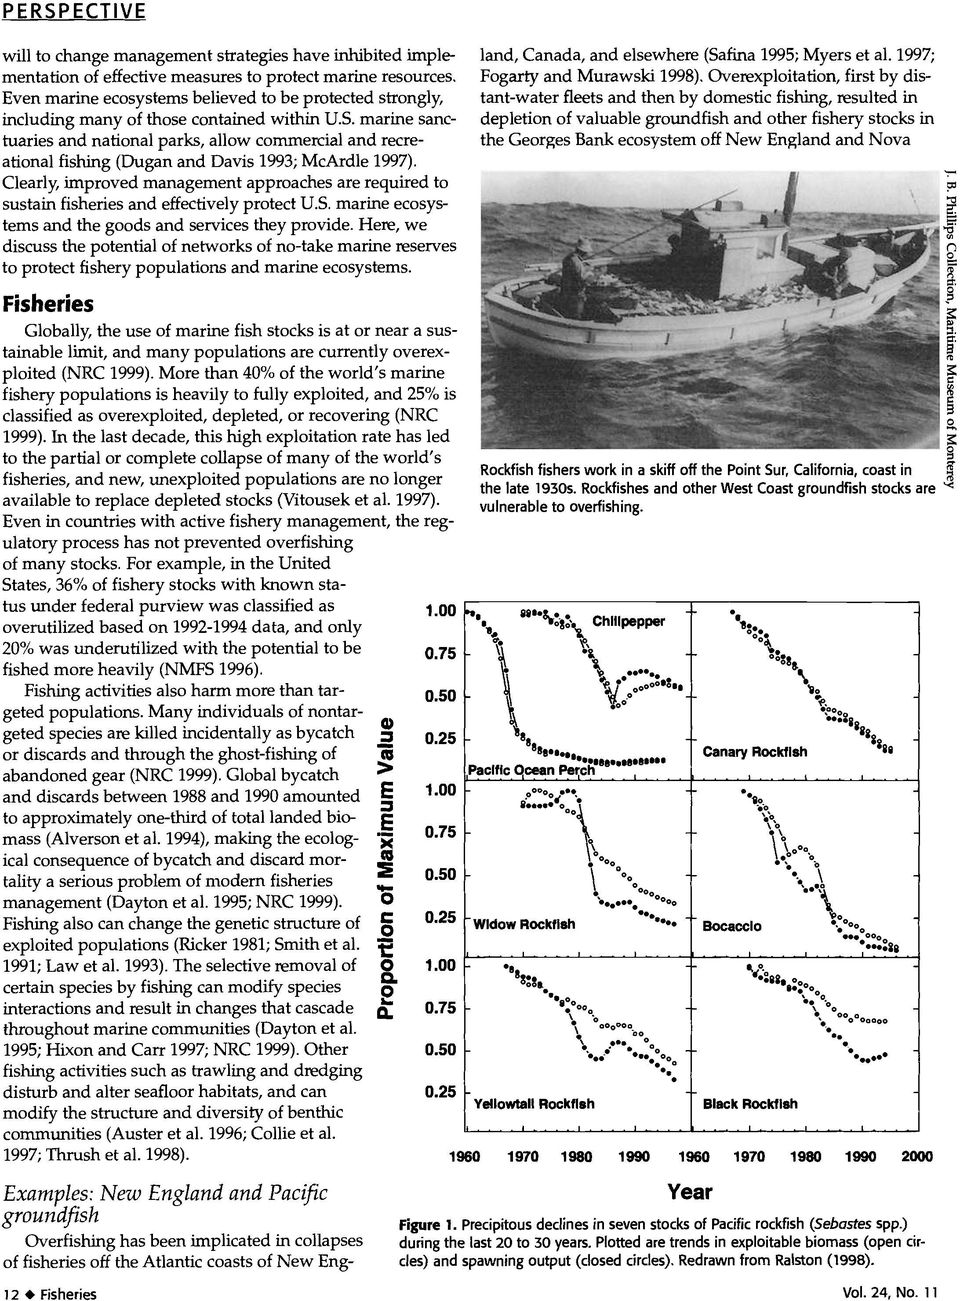 marine sanctuaries and national parks, allow commercial and recreational fishing (Dugan and Davis 1993; McArdle 1997).